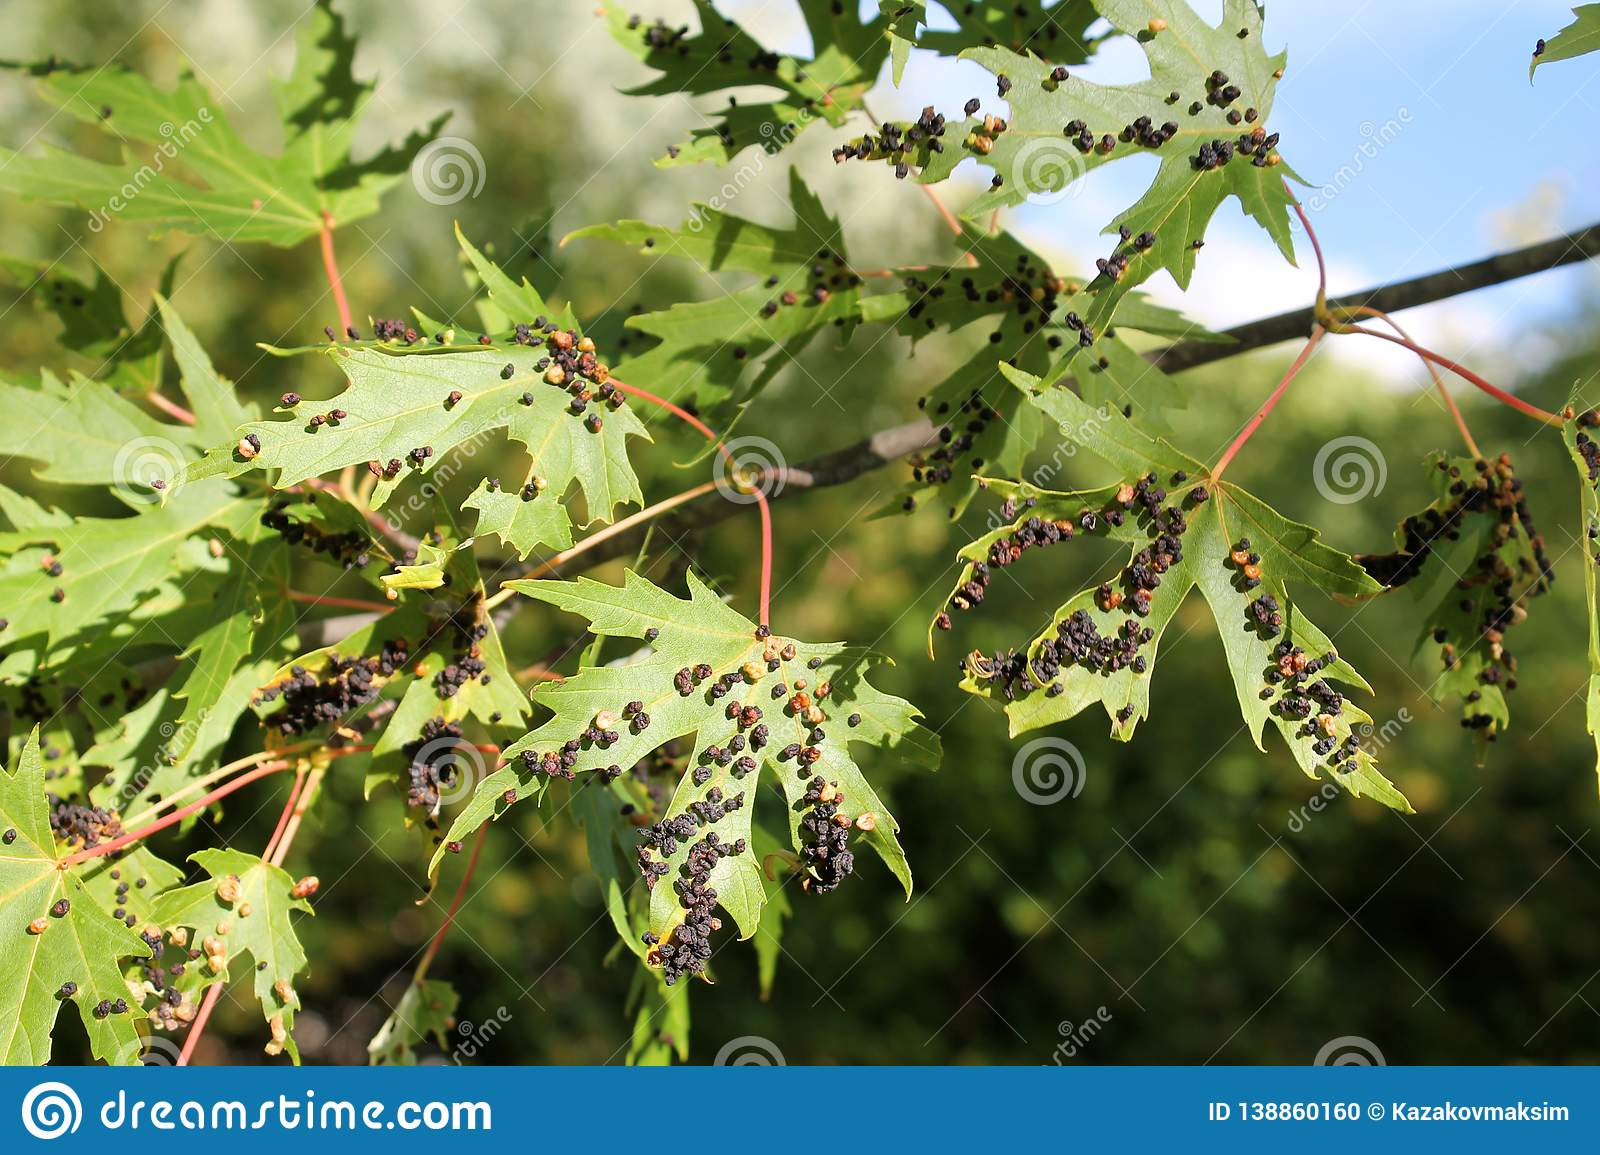 Black galls caused by maple bladder-gall mite or Vasates quadripedes on Silver Maple Acer saccharinum foliage